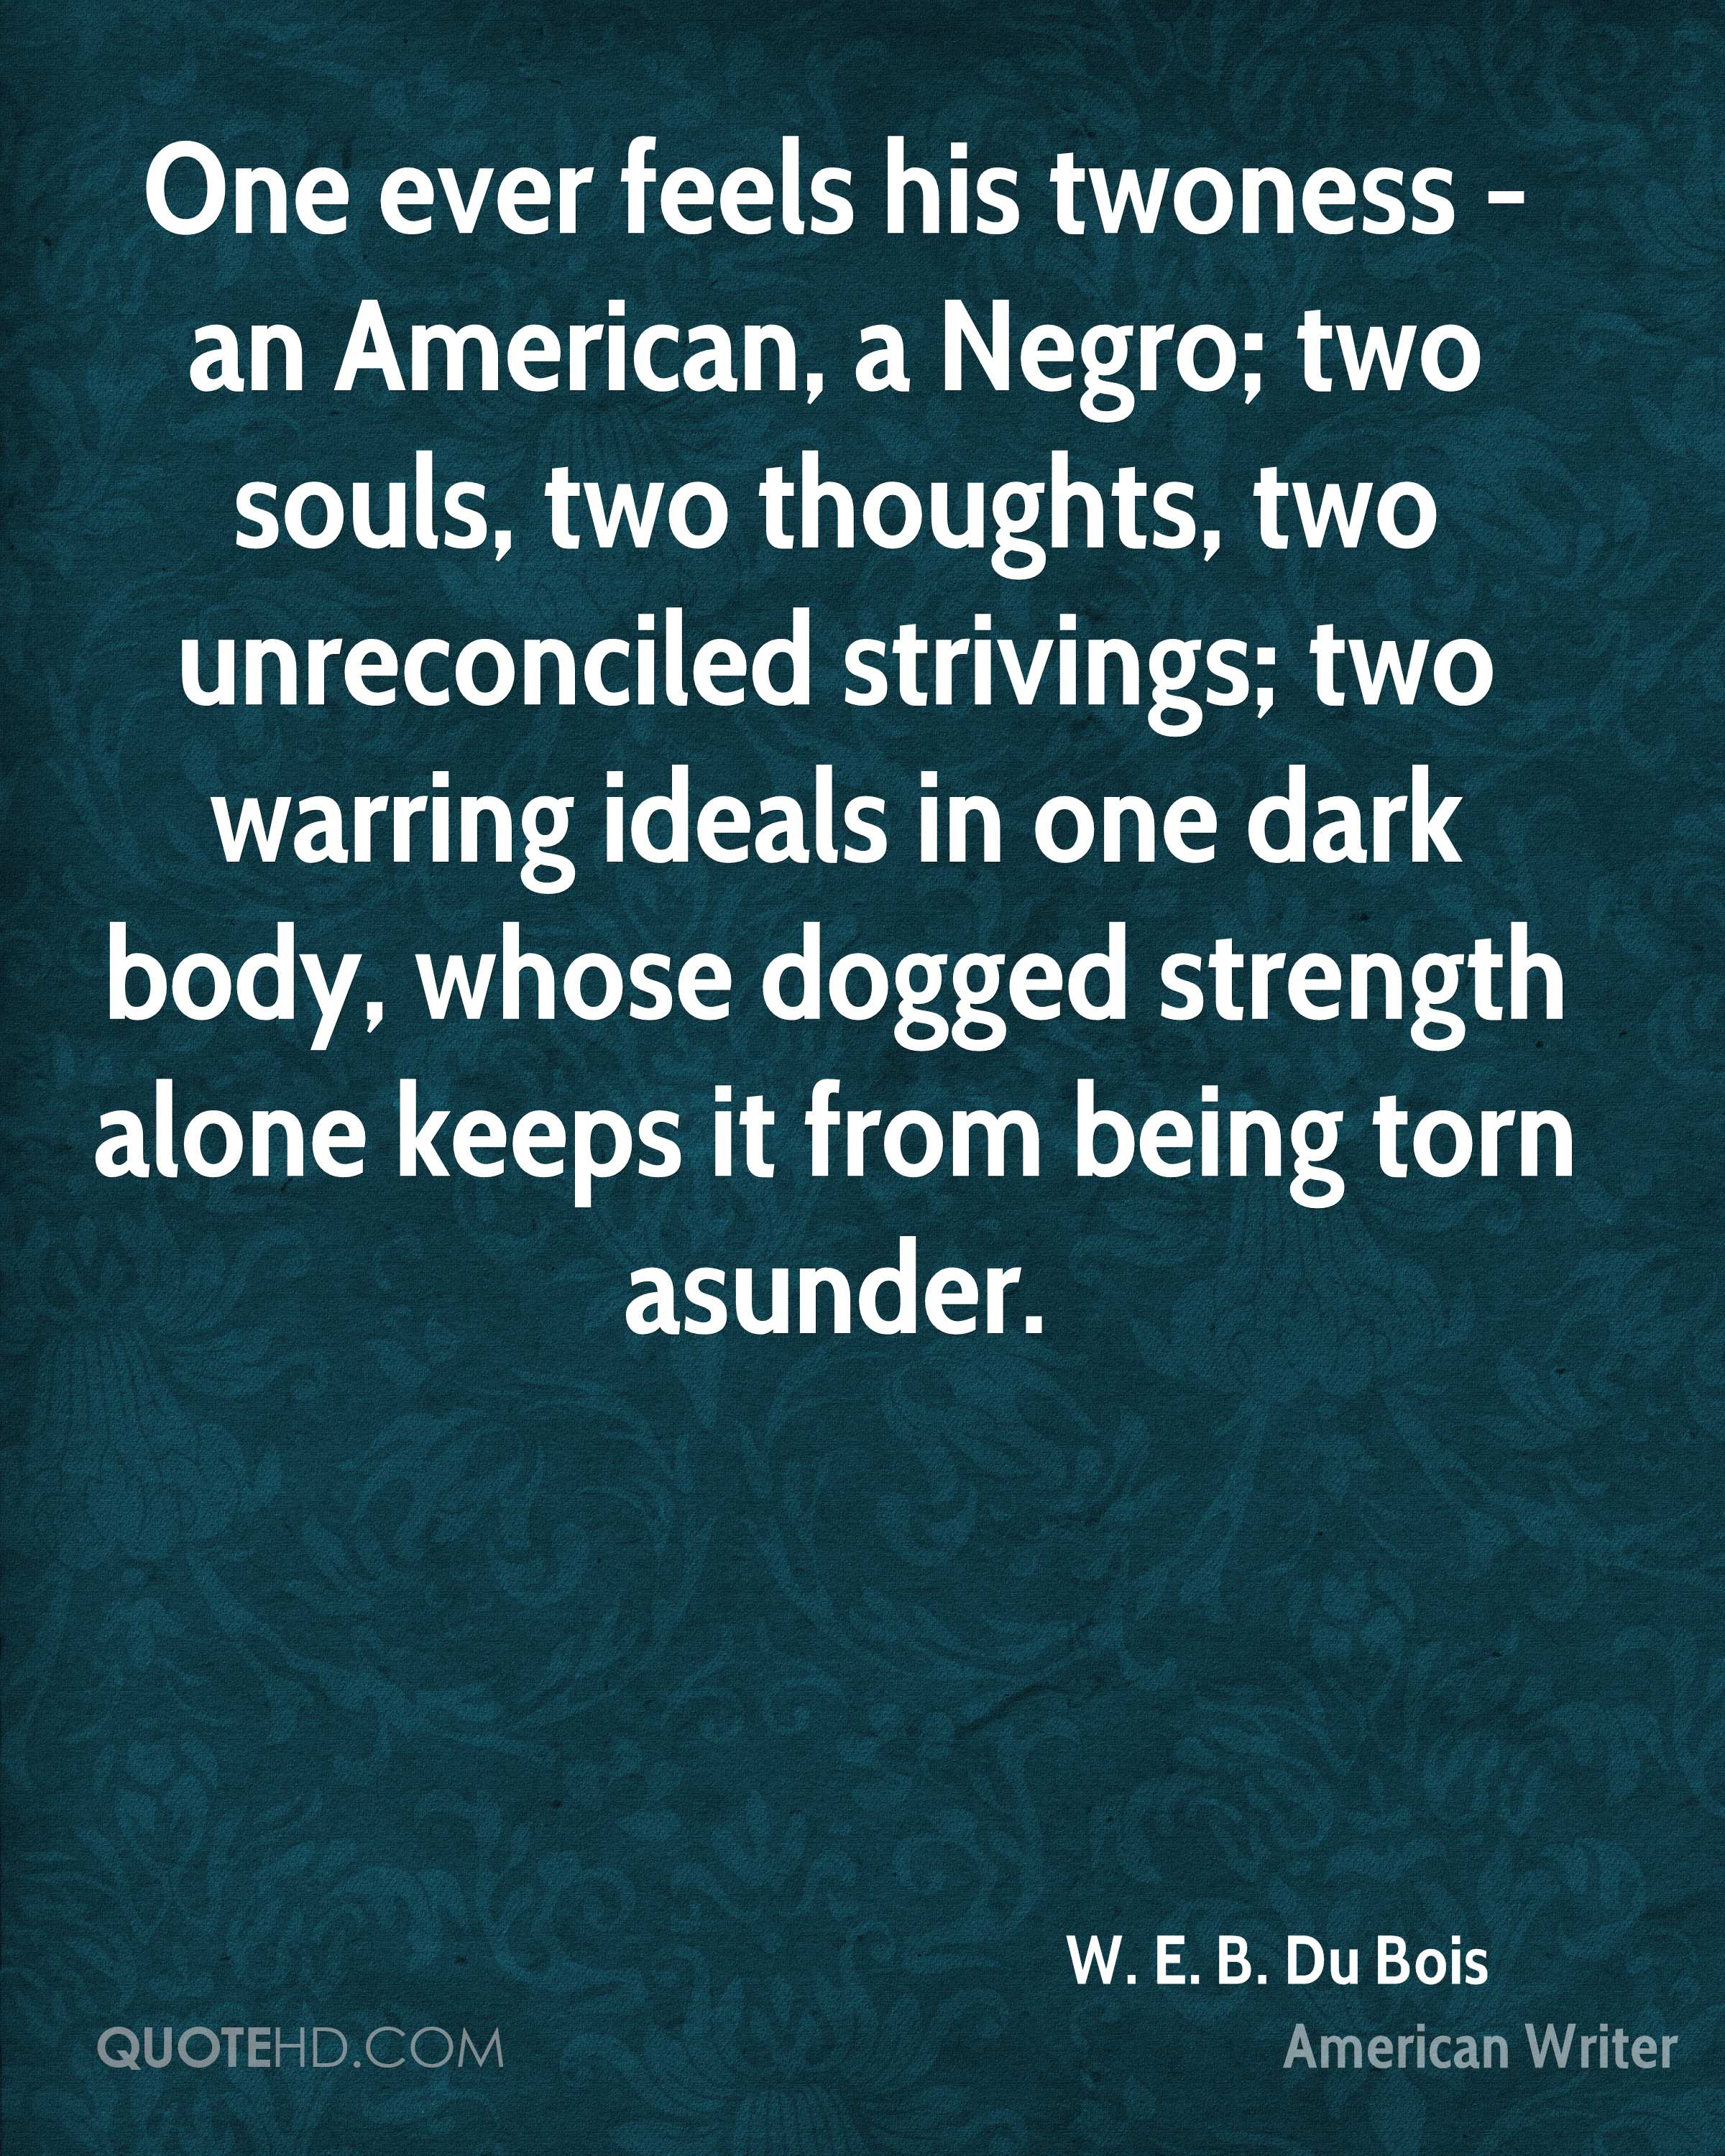 One ever feels his twoness - an American, a Negro; two souls, two thoughts, two unreconciled strivings; two warring ideals in one dark body, whose dogged strength alone keeps it from being torn asunder.